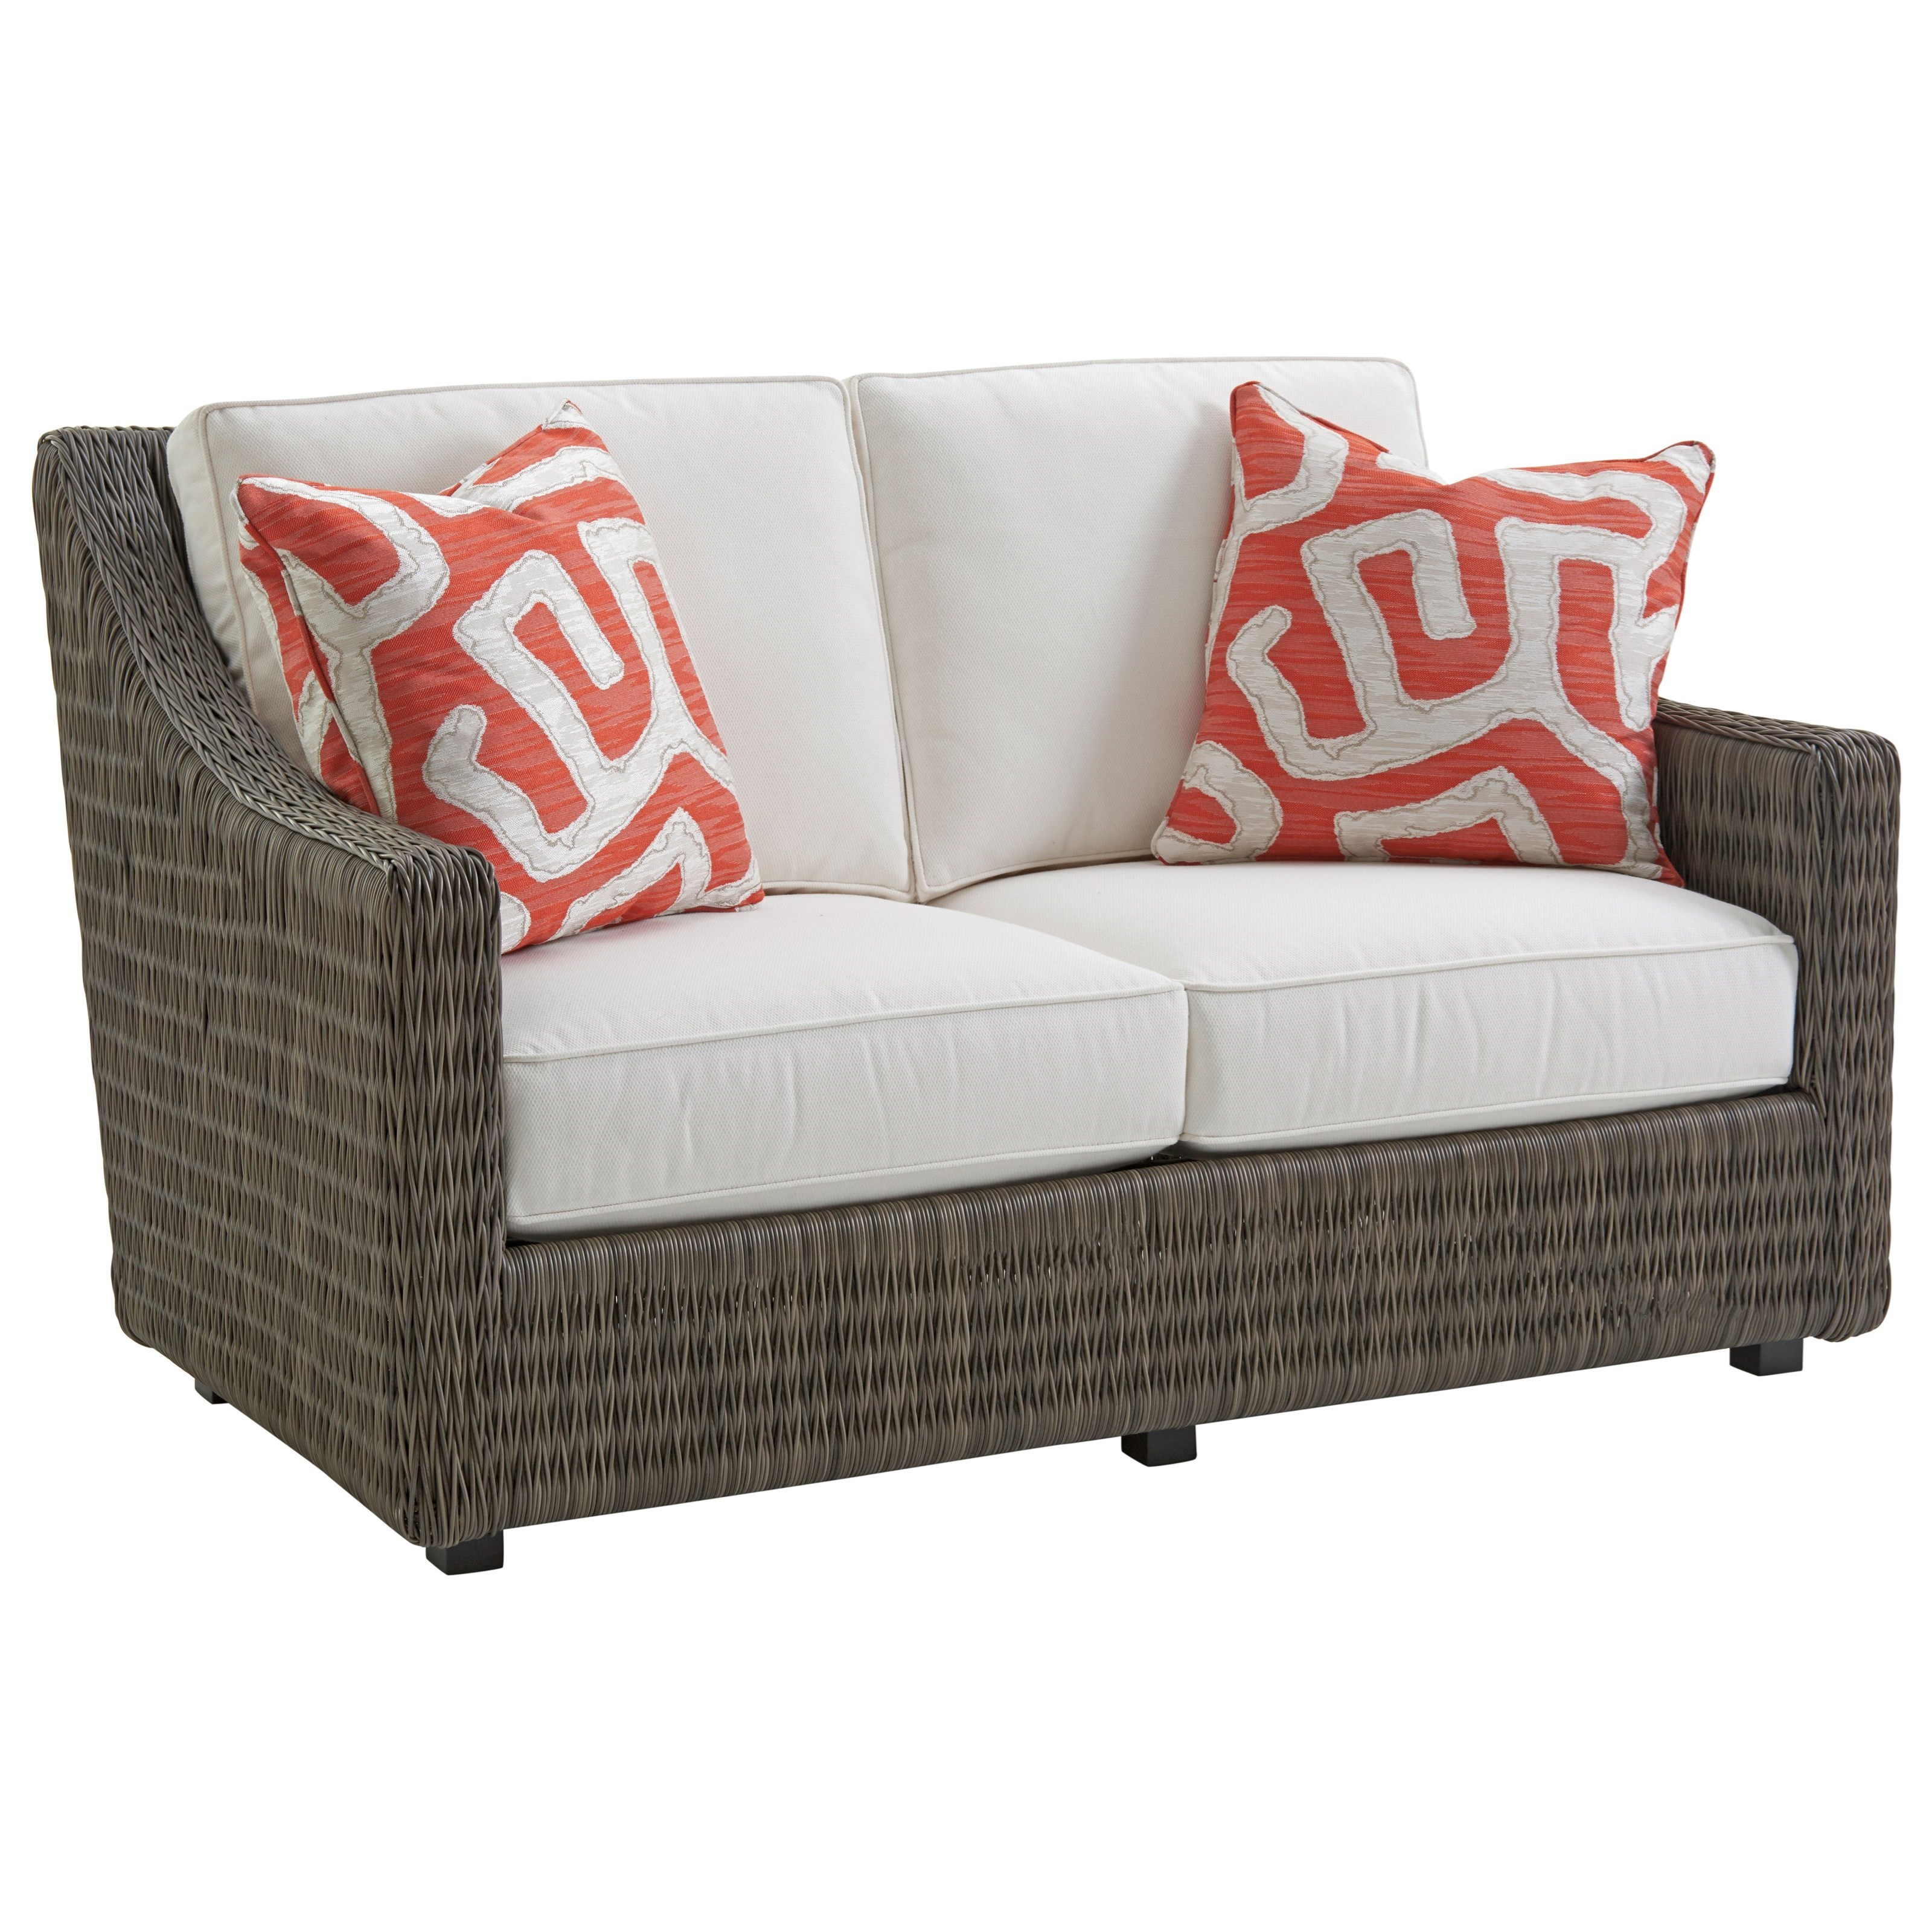 Cypress Point Ocean Terrace Outdoor Loveseat by Tommy Bahama Outdoor Living at Baer's Furniture